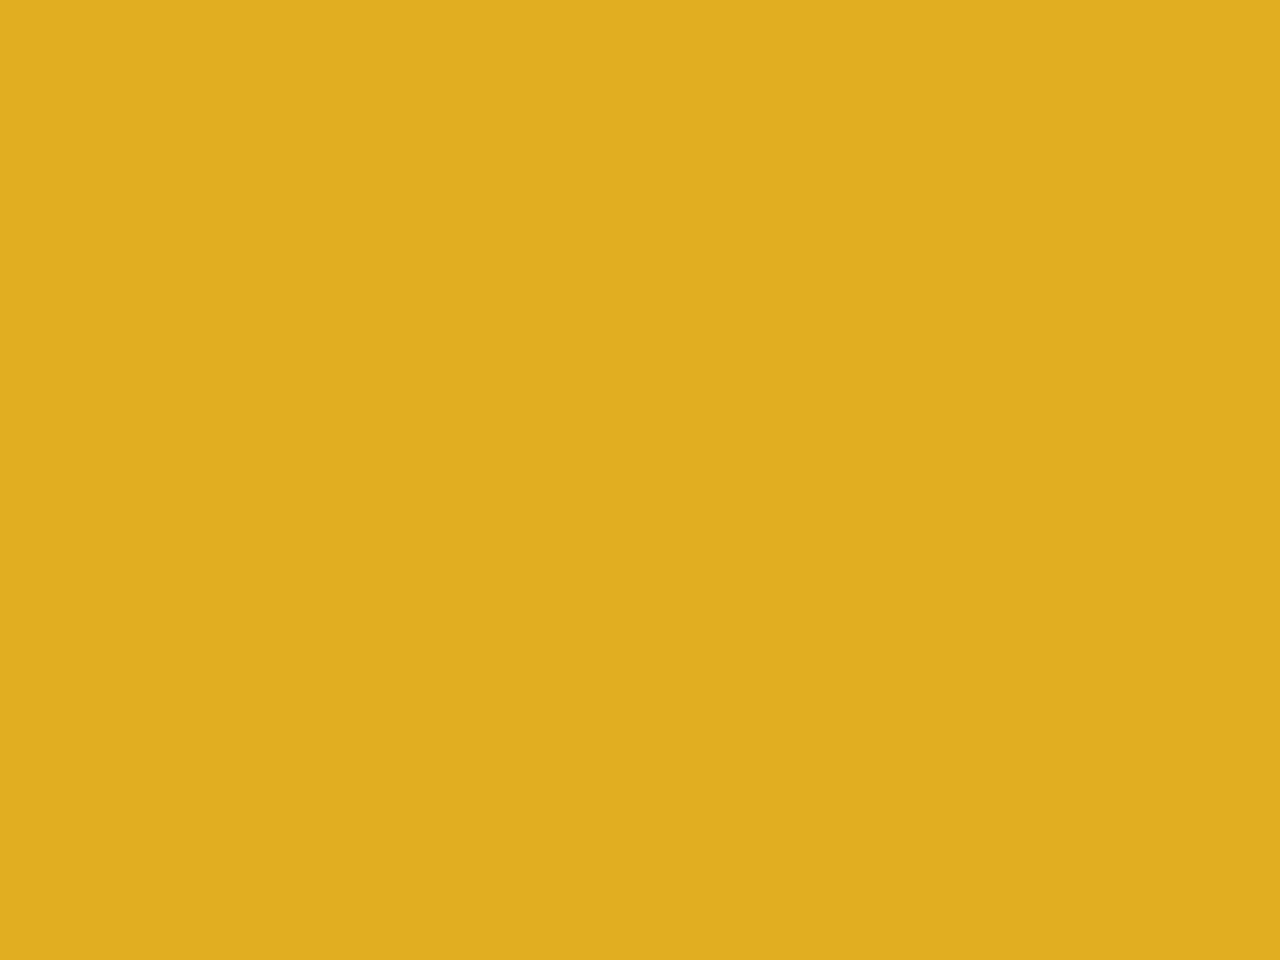 1280x960 Urobilin Solid Color Background